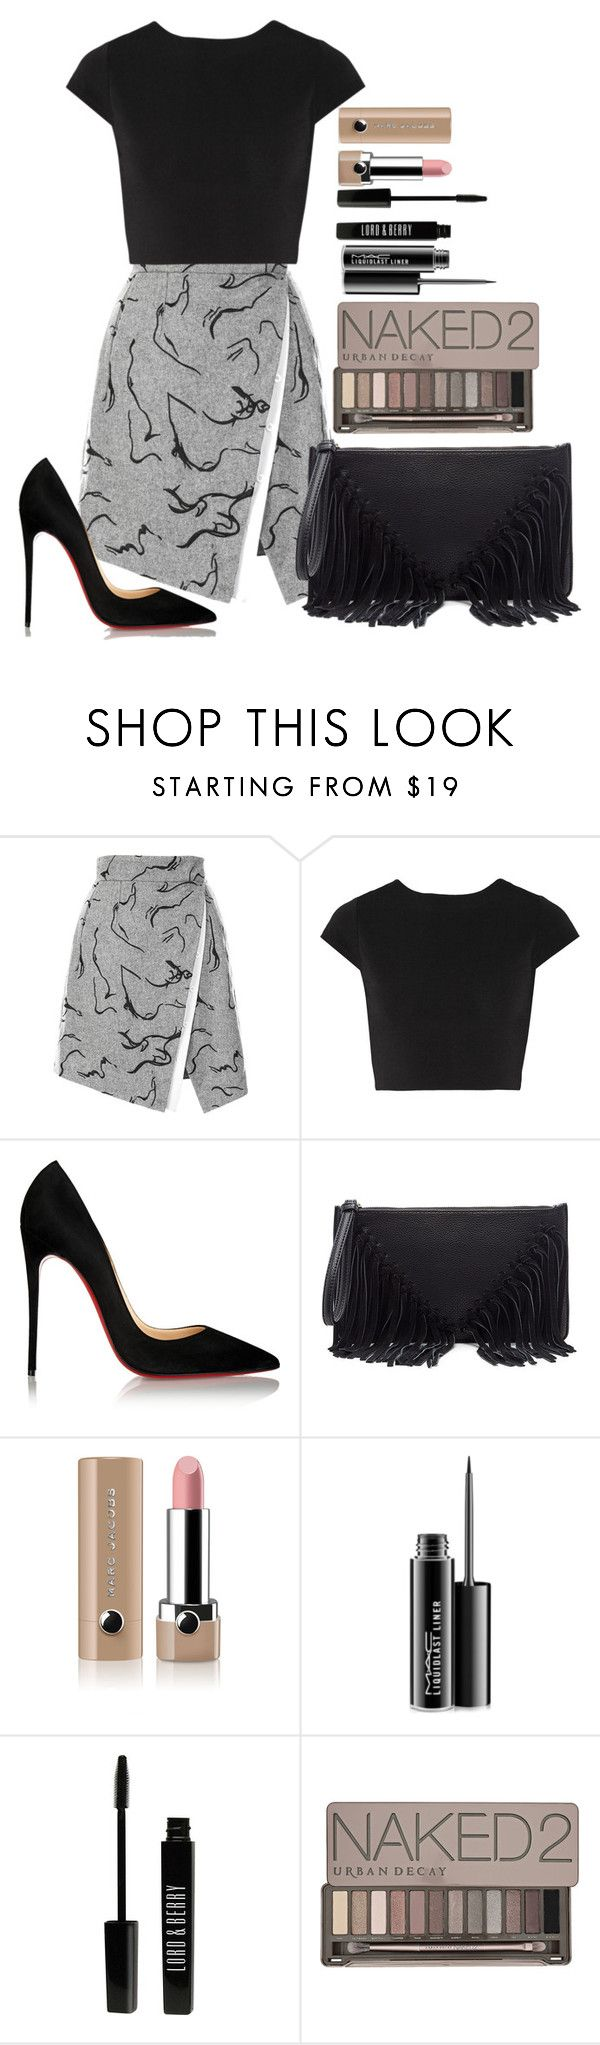 """Untitled #1402"" by fabianarveloc on Polyvore featuring Alice + Olivia, Christian Louboutin, Sole Society, Marc Jacobs, MAC Cosmetics, Lord & Berry, Urban Decay, women's clothing, women and female"